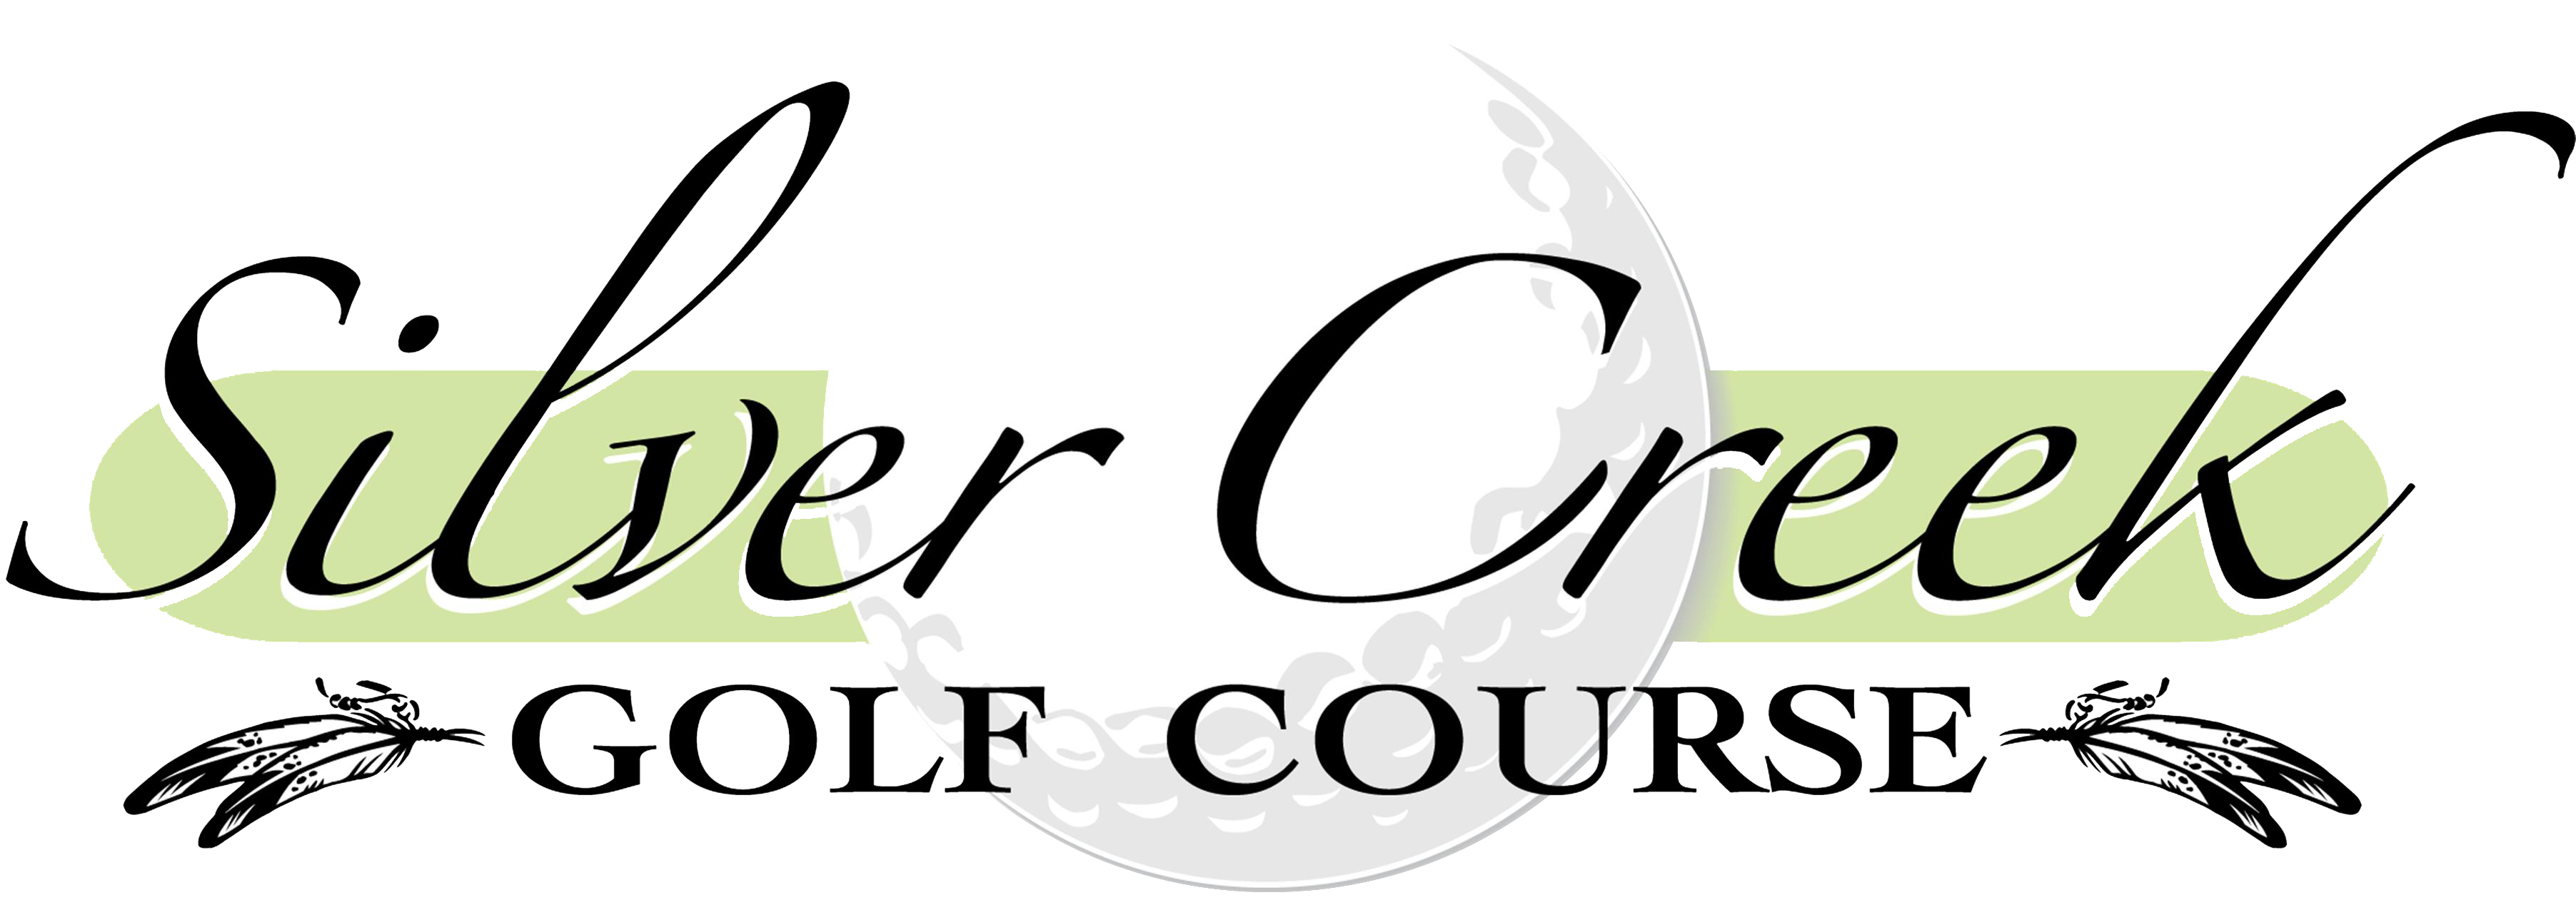 Silver Creek Golf Course